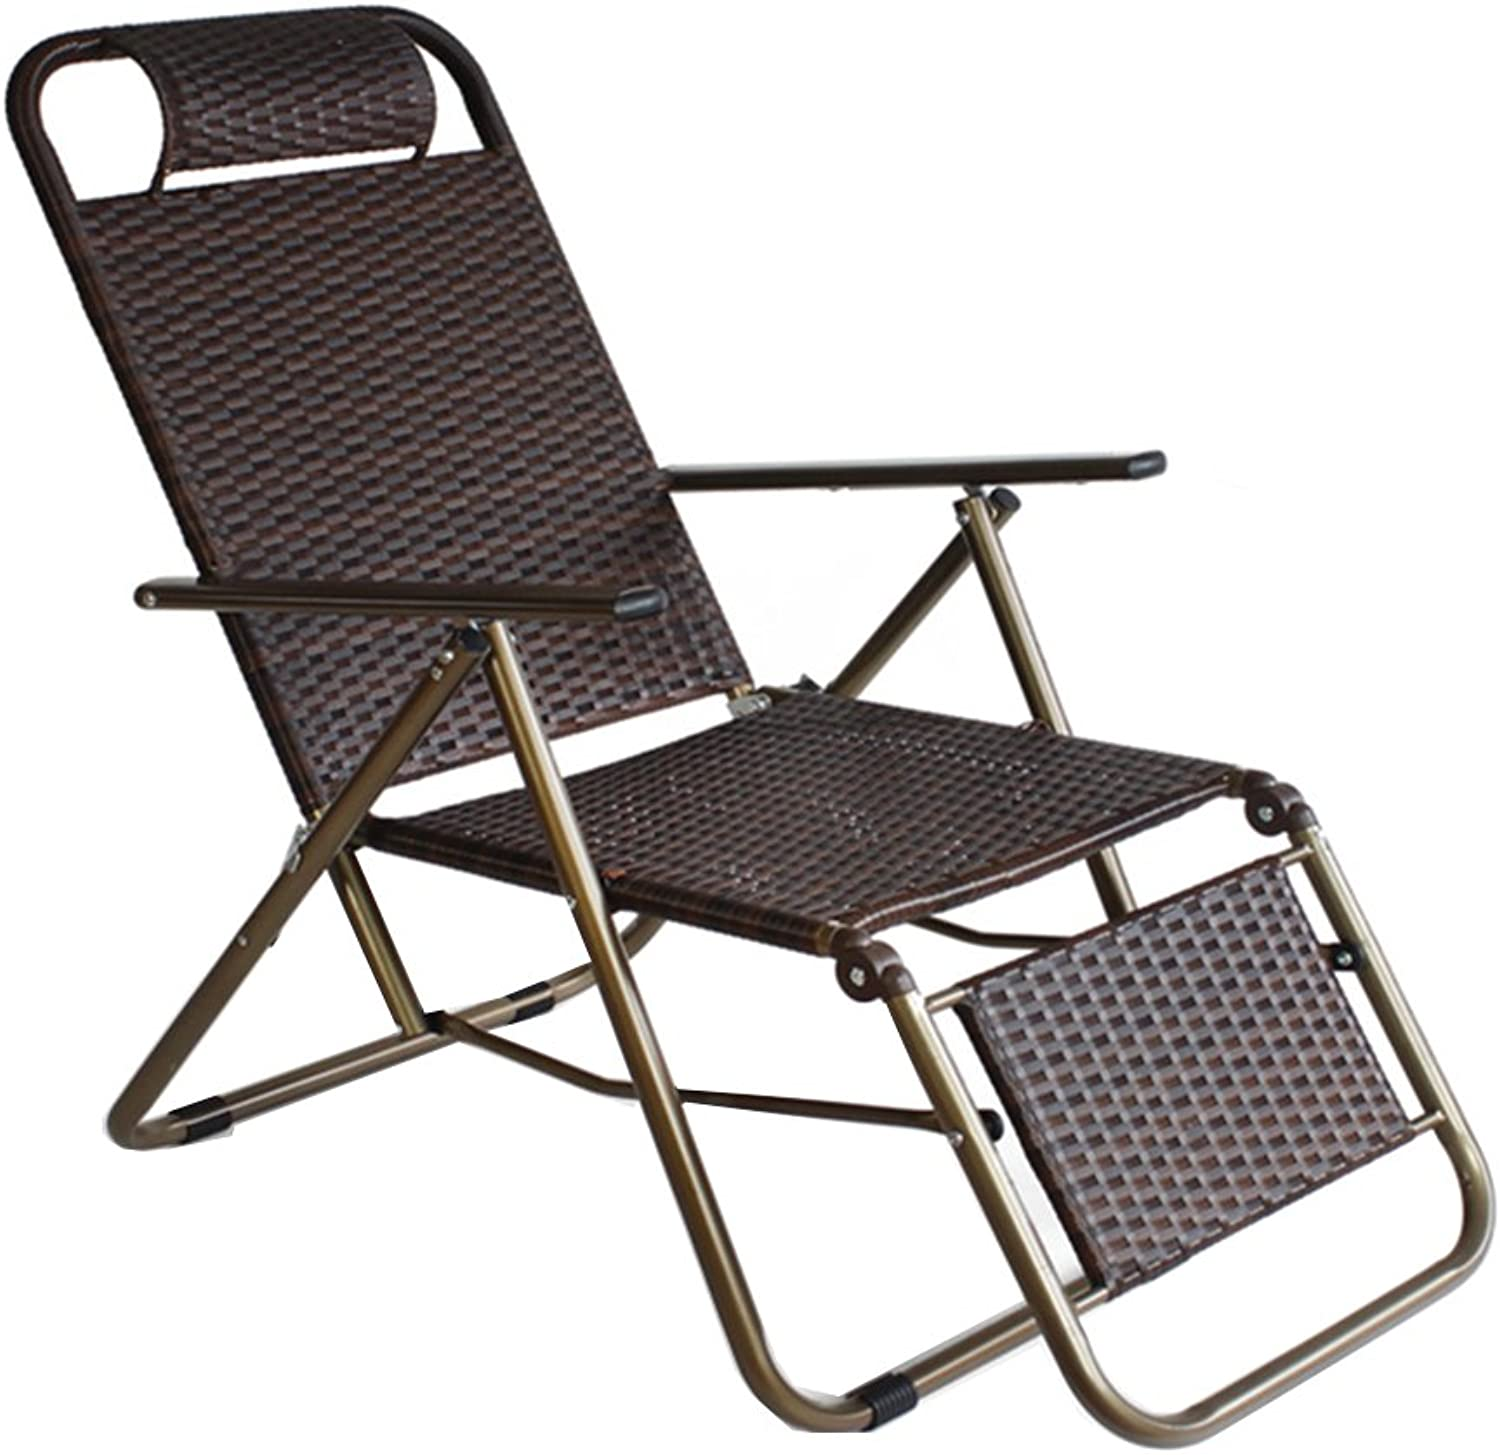 DKJH DLDL Summer Reinforced Wicker Chair Folding Chair Lazy Chair Tri Fold Square Pipe Wicker Chair